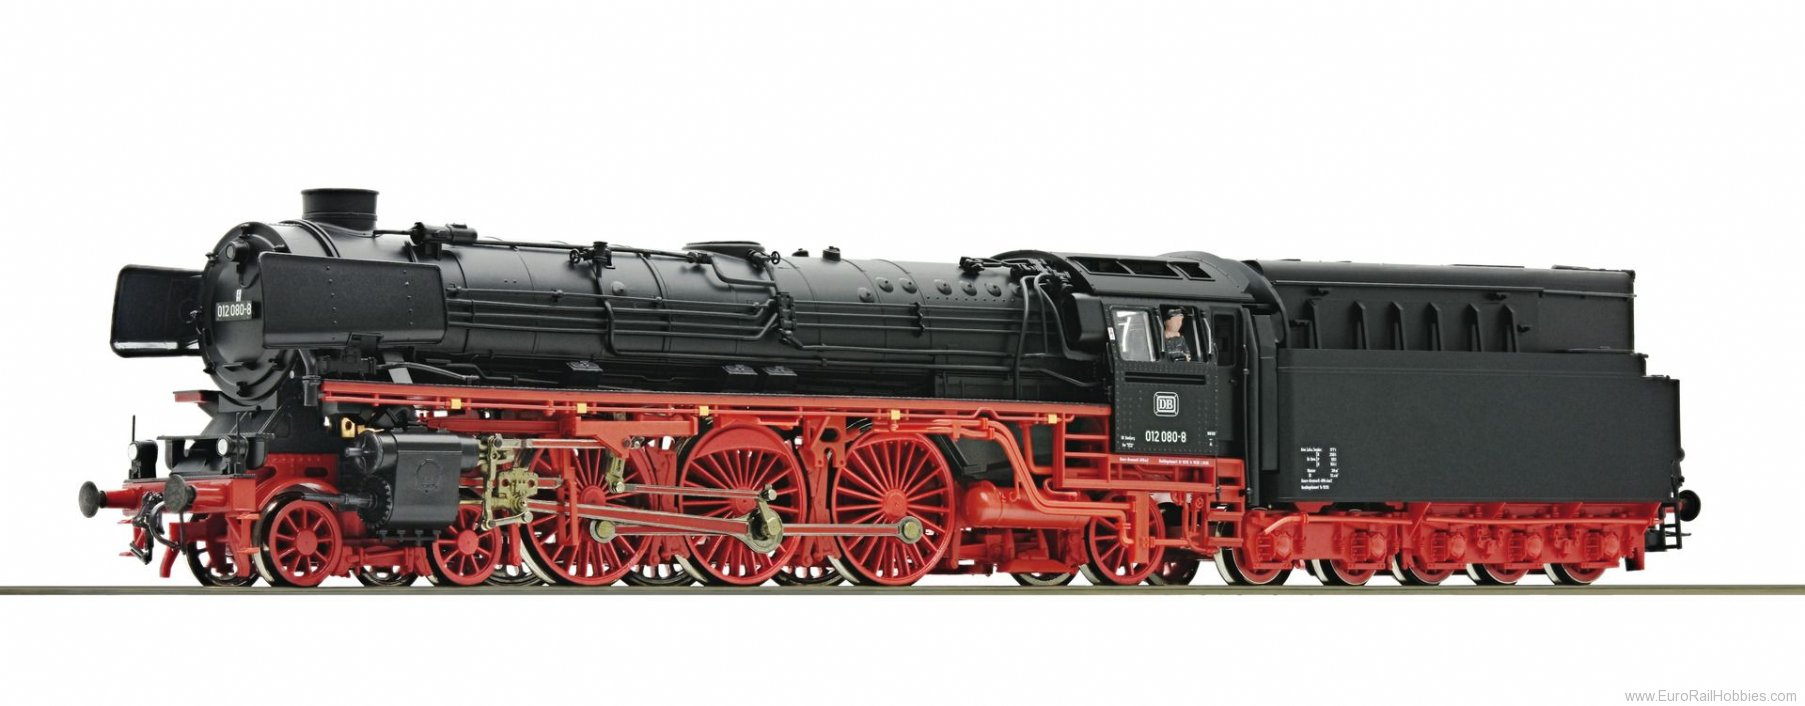 Roco 72136 DB 012 080 Steam Locomotive